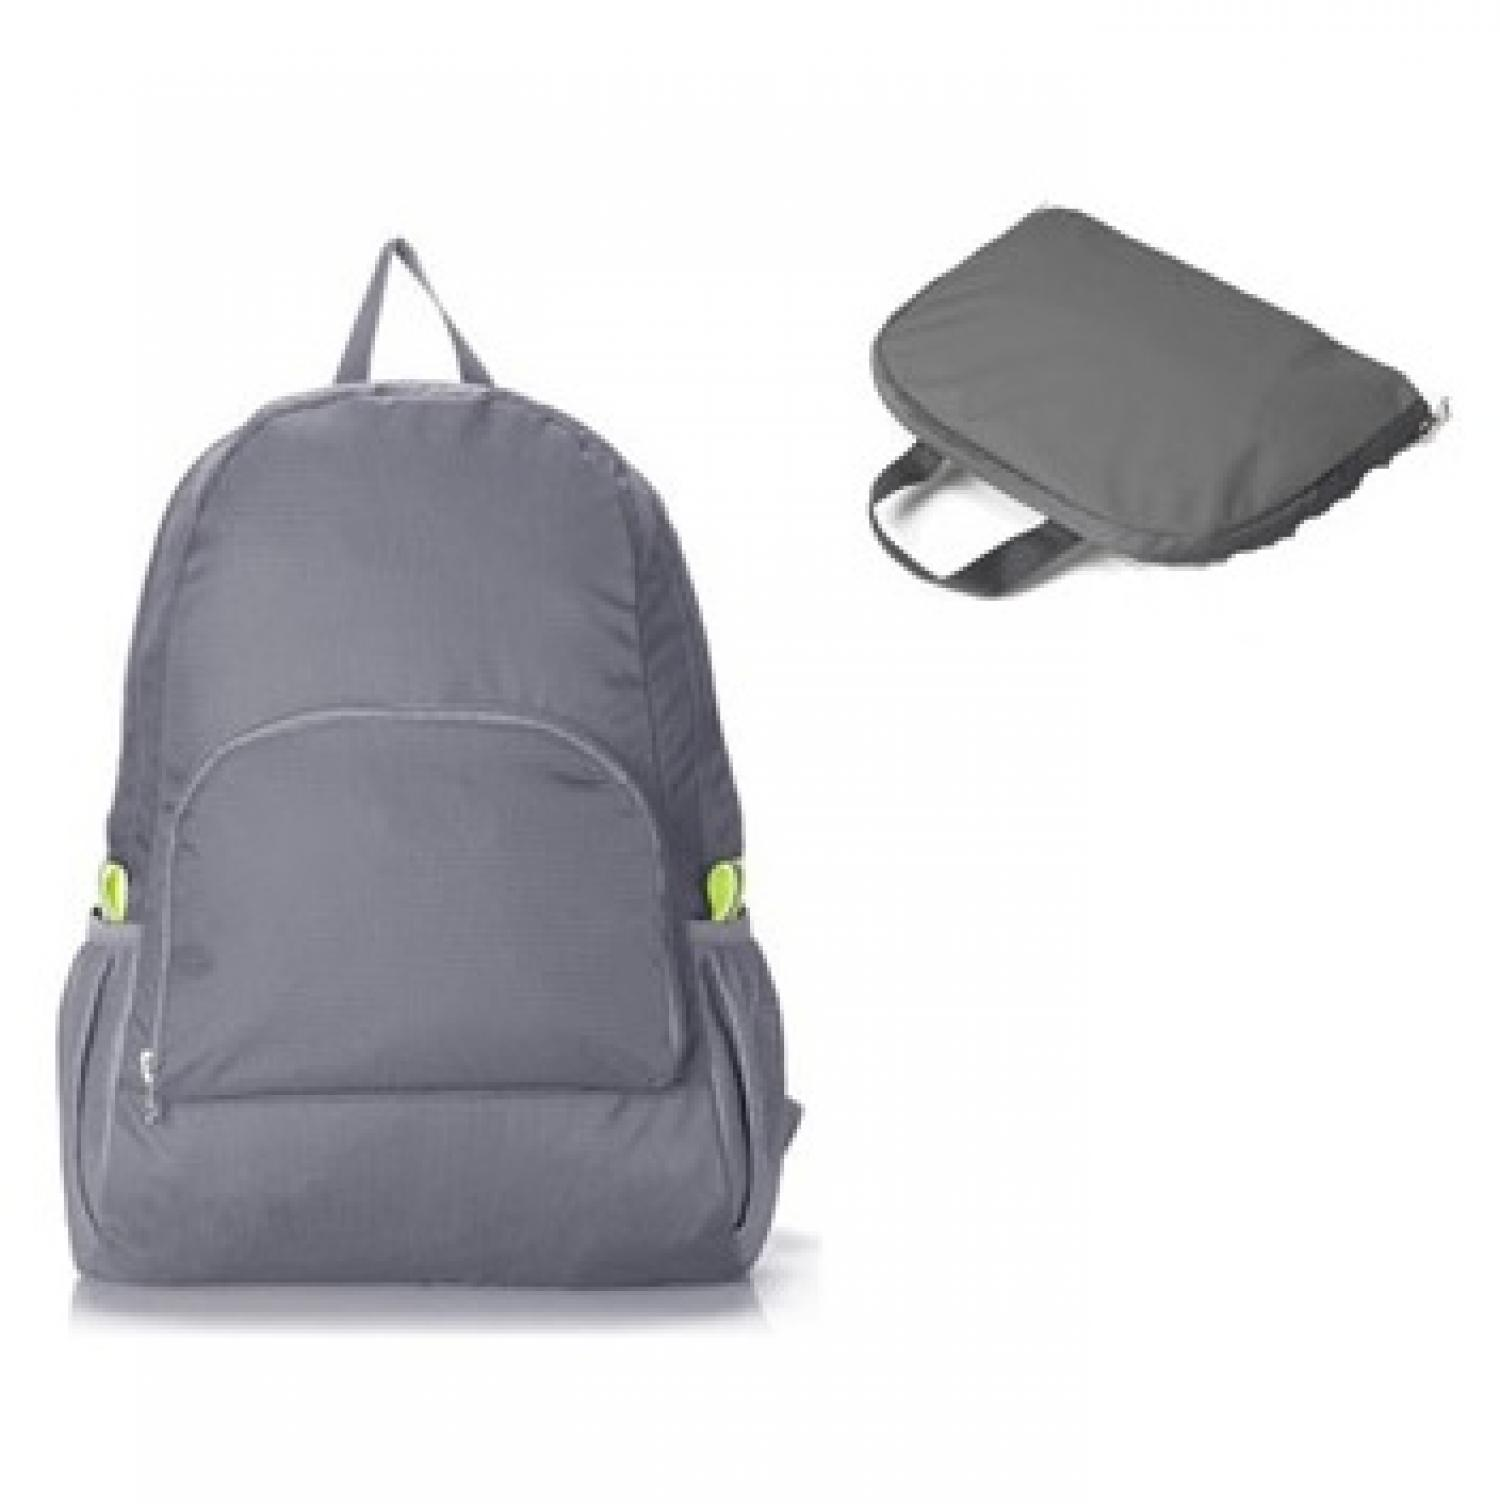 Tas Backpack Lipat Travel Large Capacity